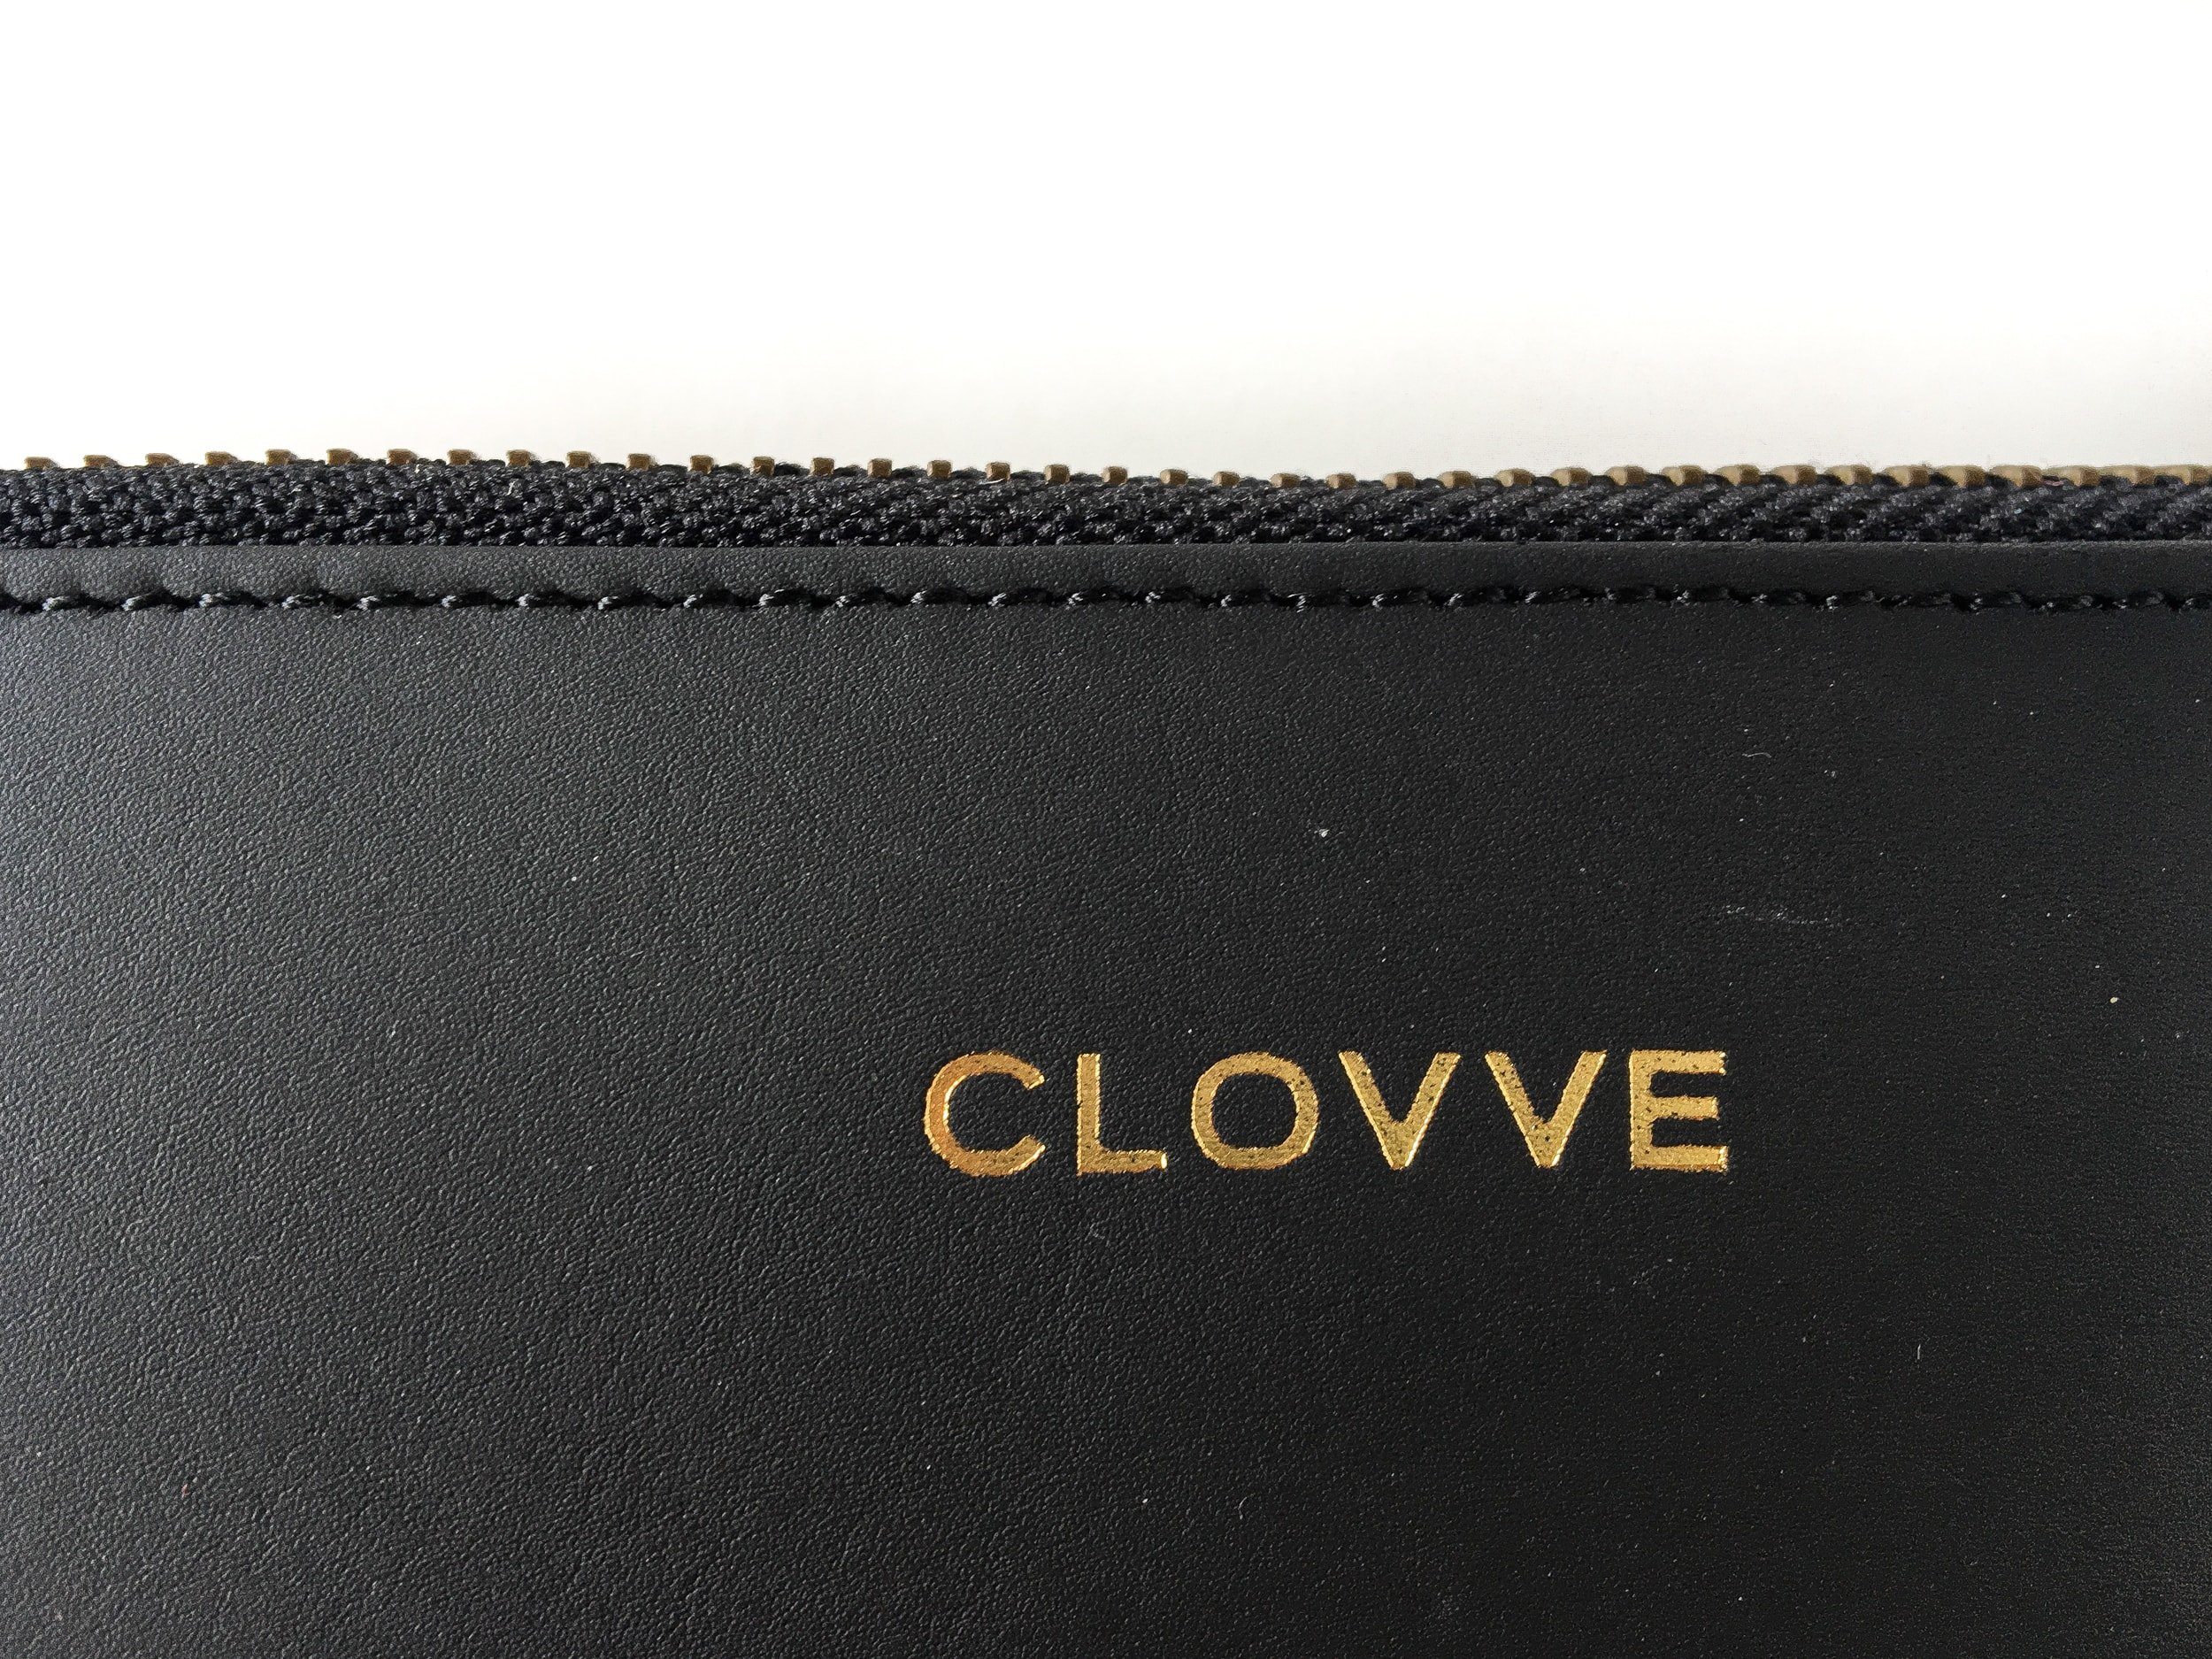 Clovve Handmade Buffalo Leather Women's Wristlet, 7 Inches| Classical Monochrome Luxury Range | Casual purse for outings, dates, and parties | Monochrome Black by Clovve (Image #3)